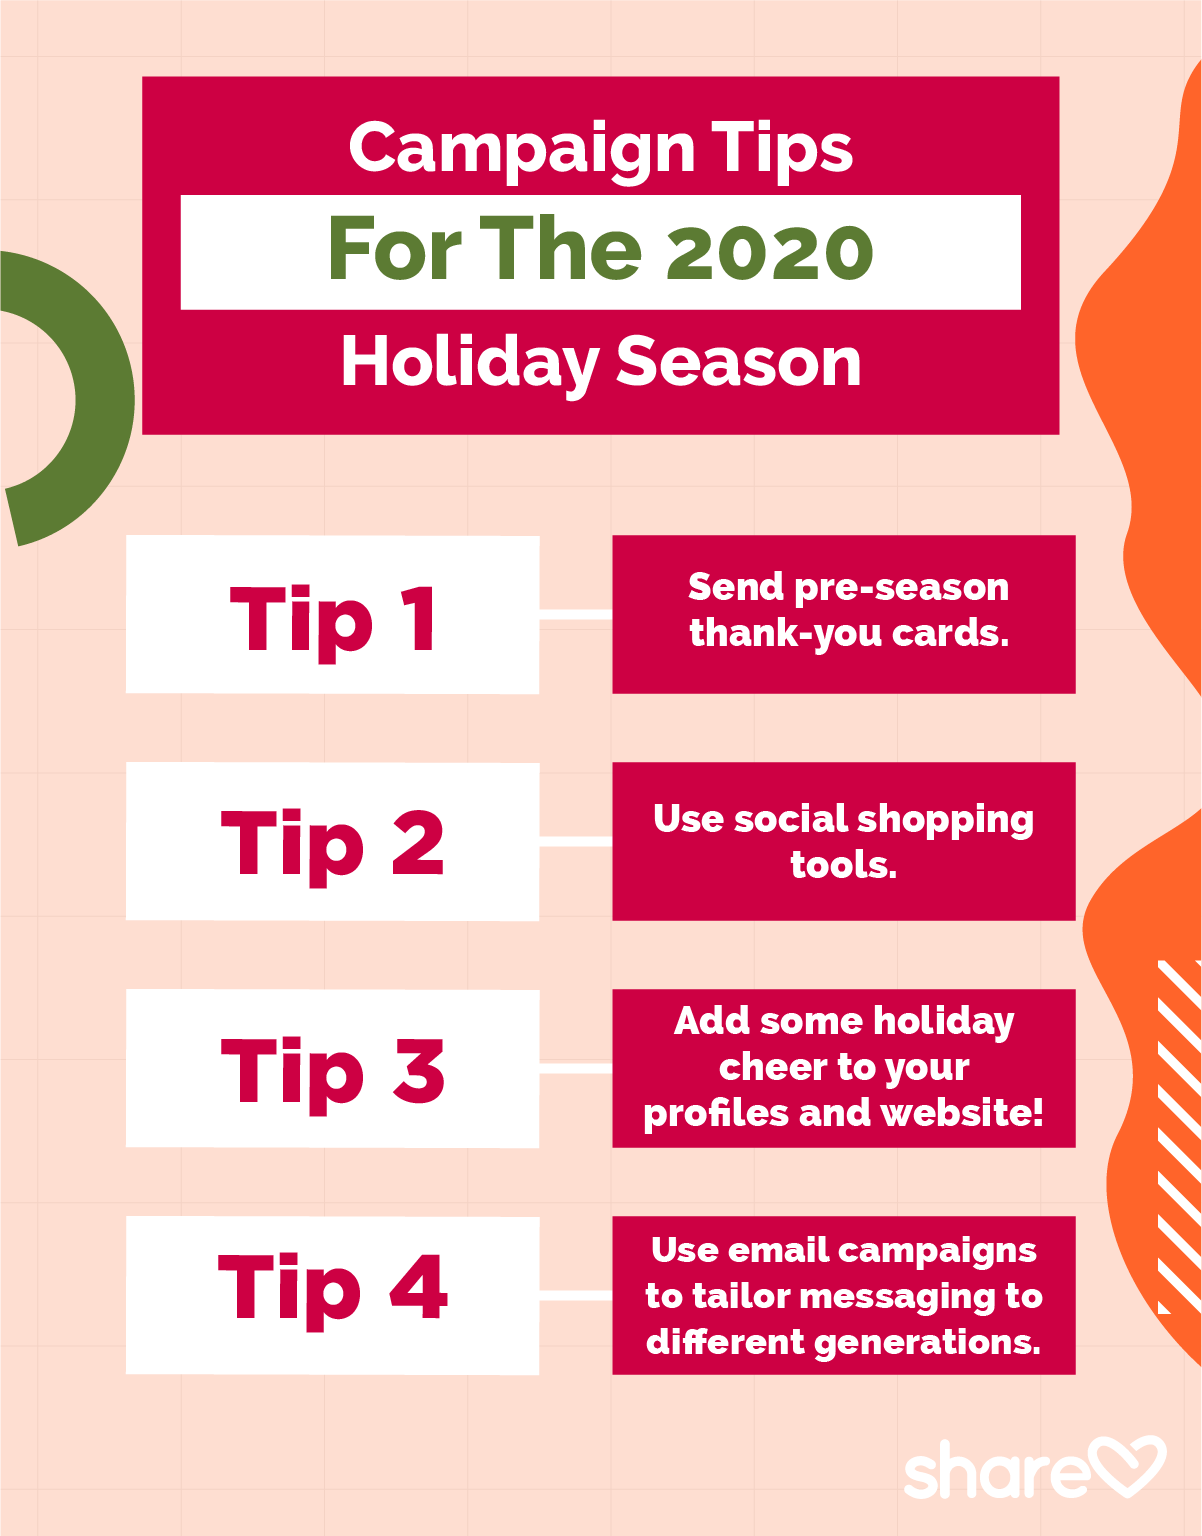 Campaign Tips for the 2020 Holiday Season (Bonus Content)